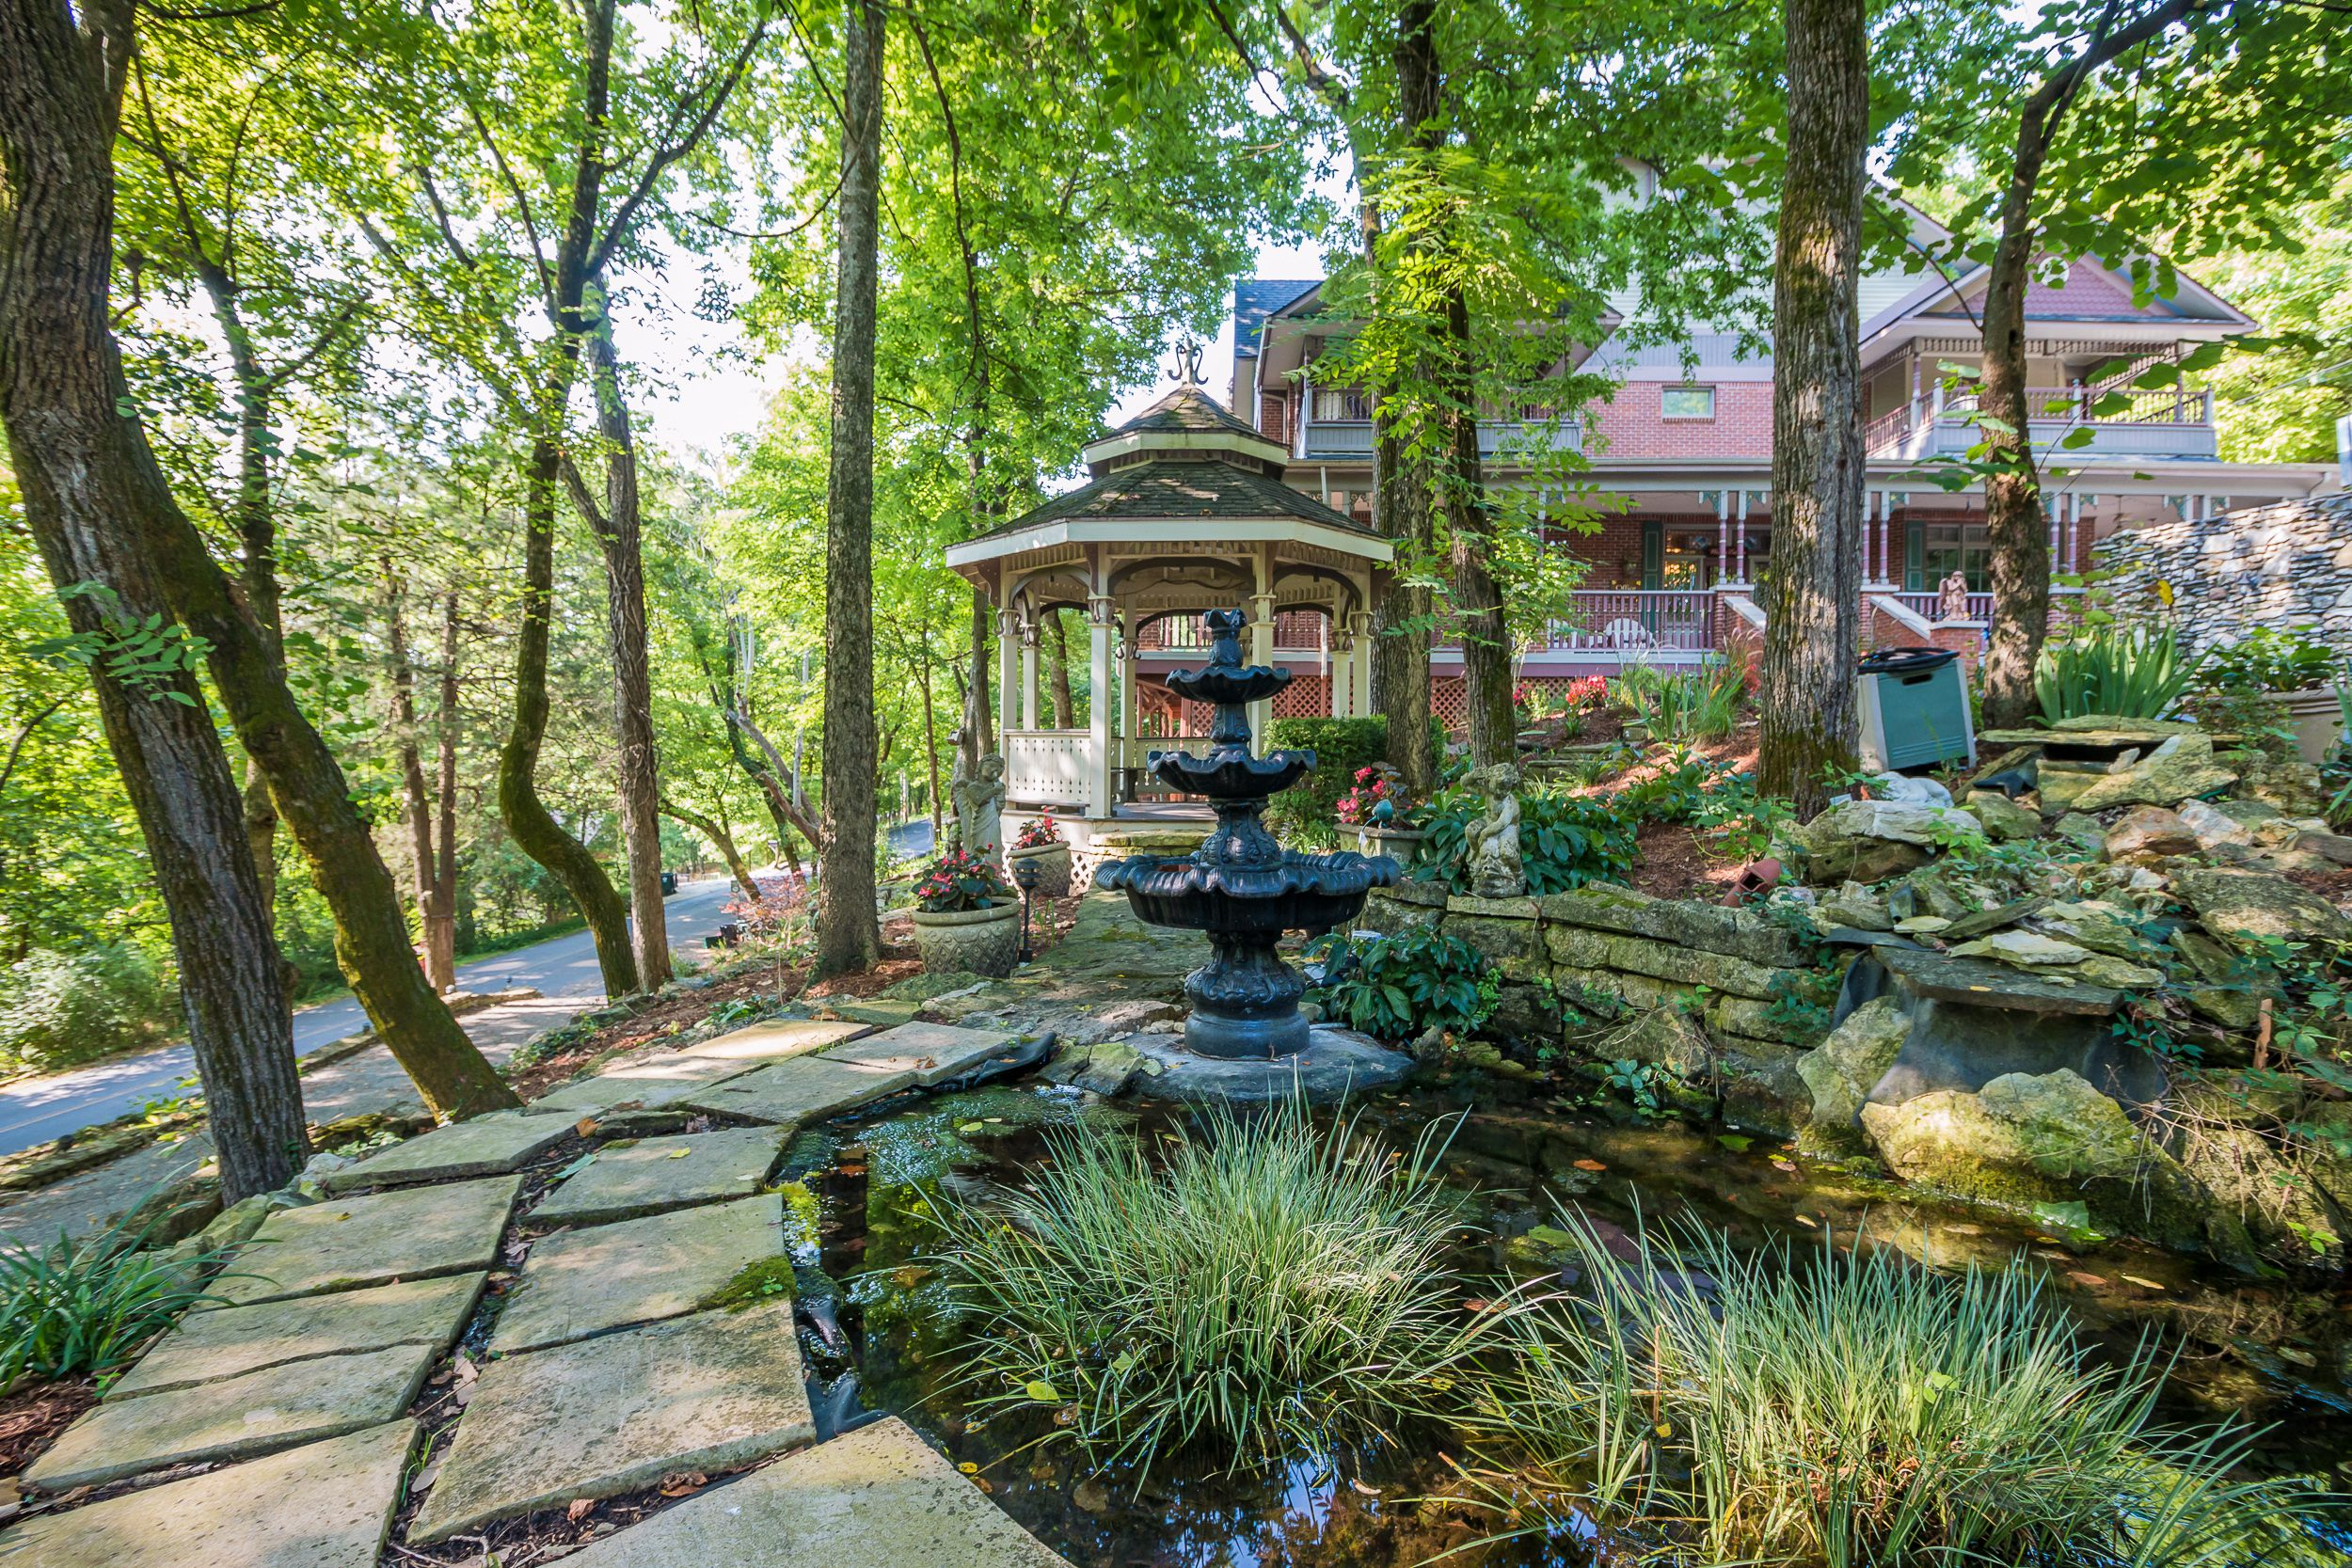 Photo of a gazebo in the garden of a Victorian-style bed and breakfast.